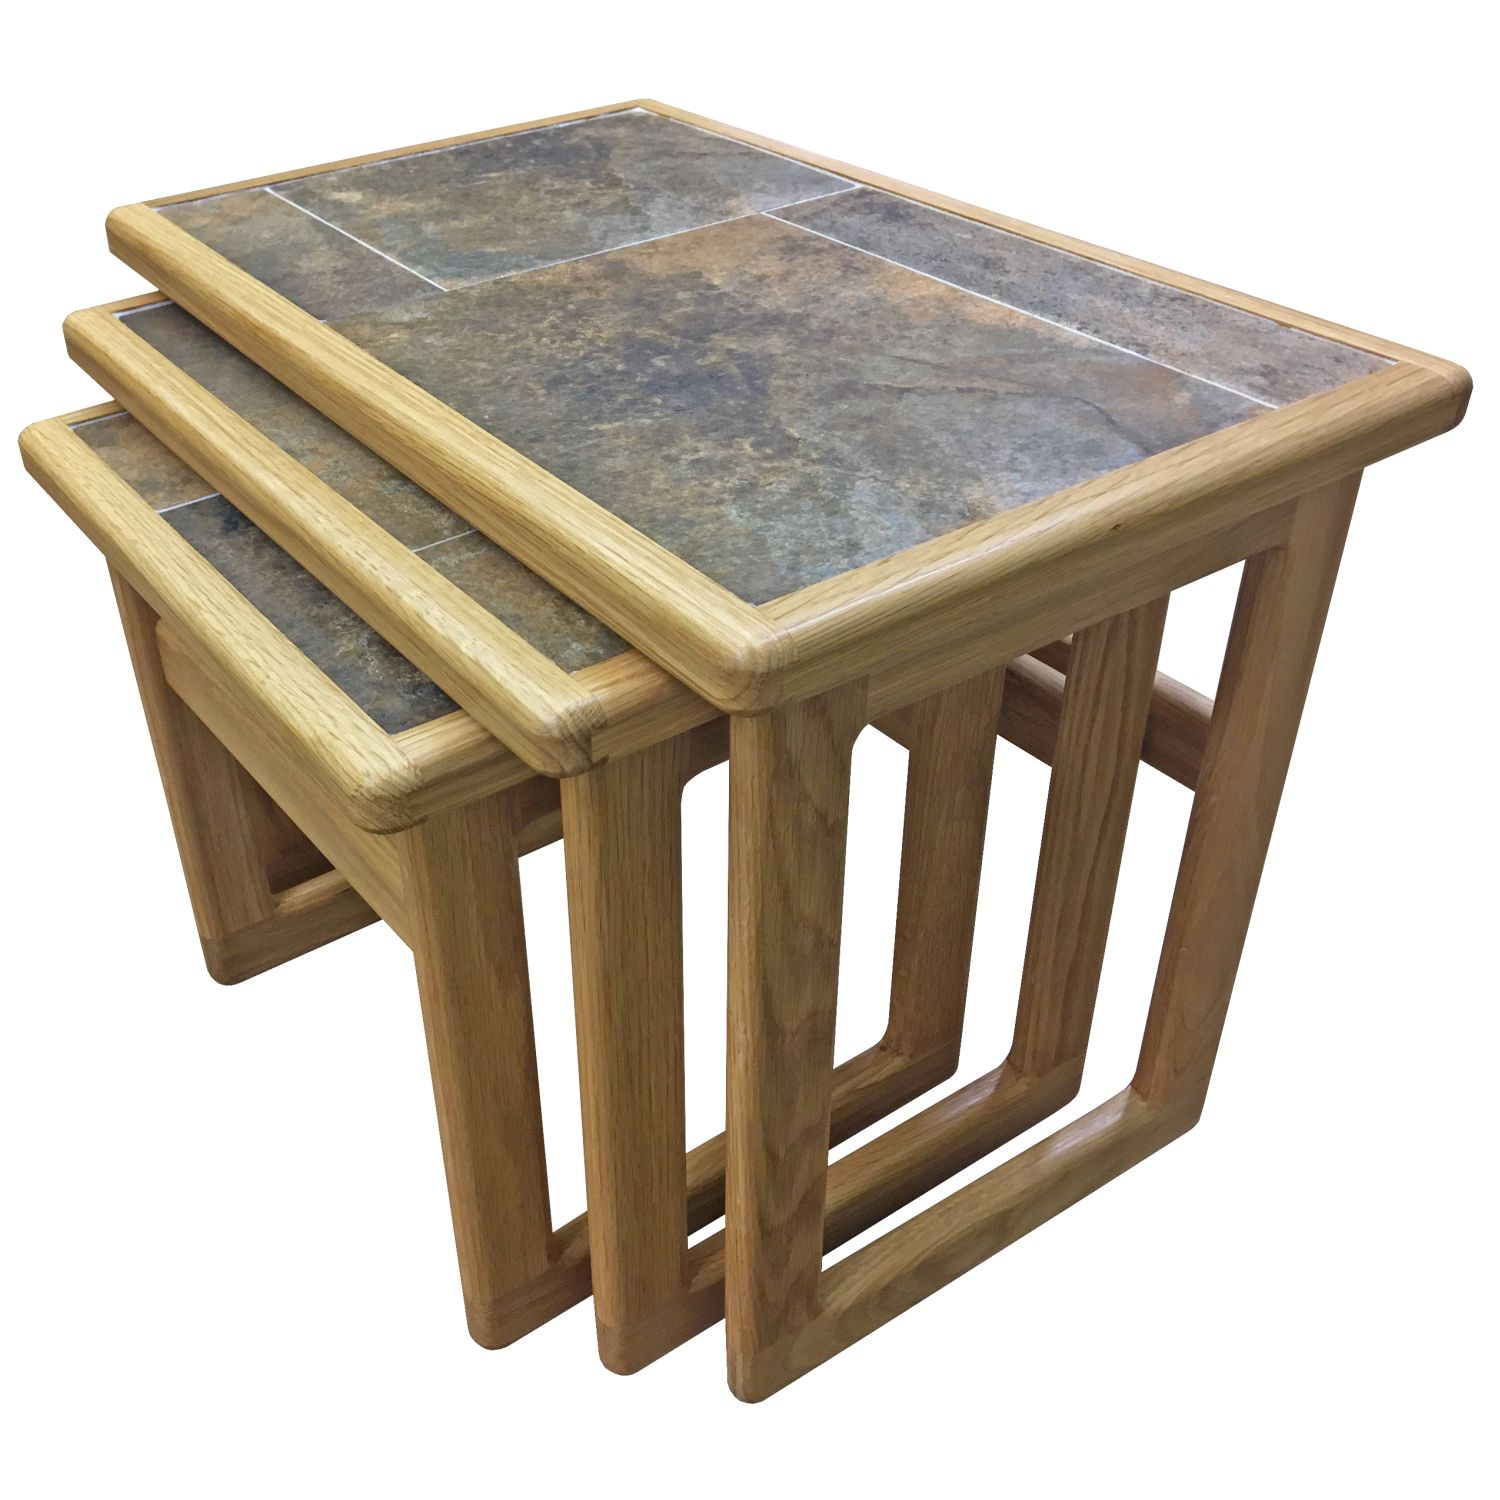 Image of Casa Autumn Tile Top Small Nest Of Tables